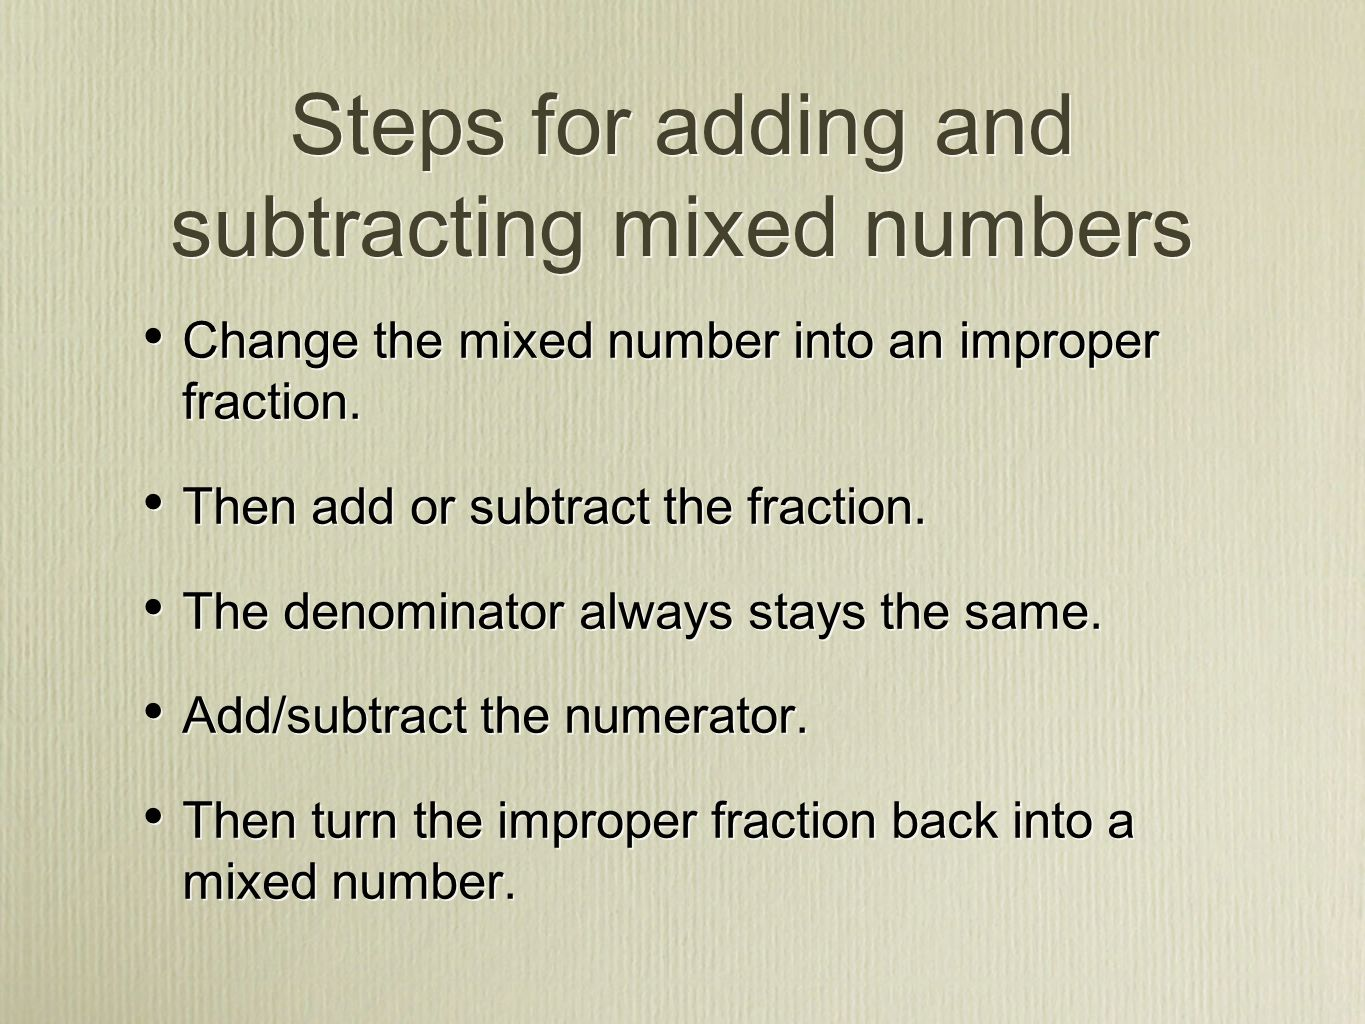 Steps For Adding And Subtracting Mixed Numbers